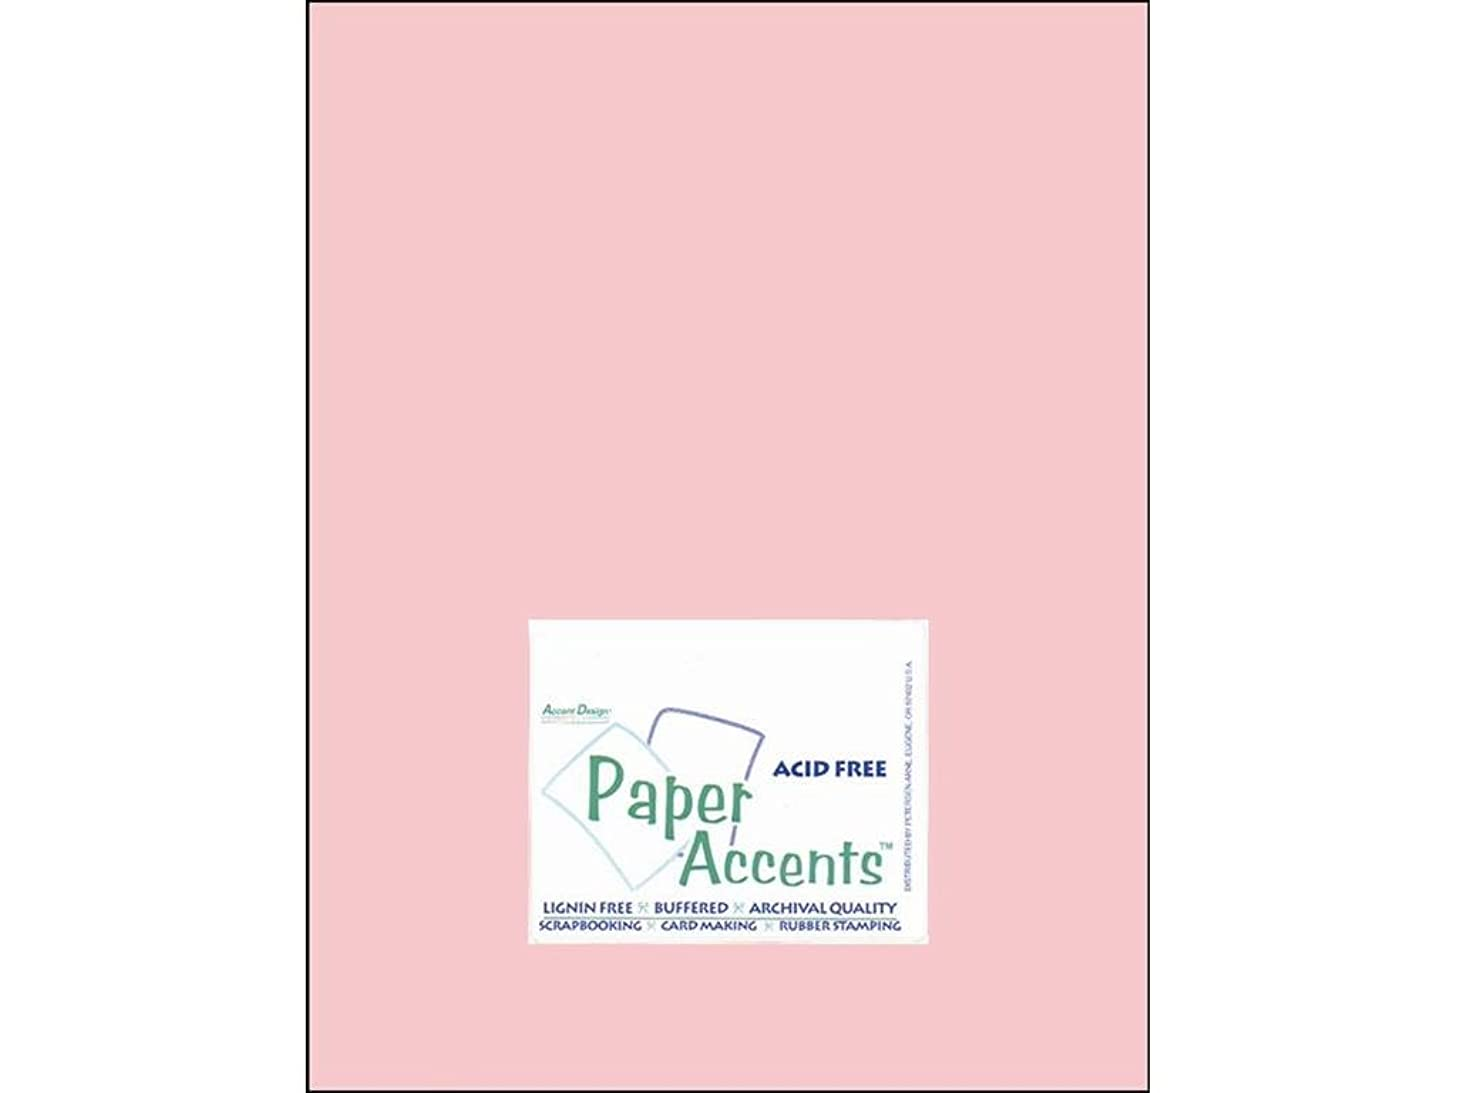 Accent Design Paper Accents Cdstk Muslin 8.5x11 74# Blushing